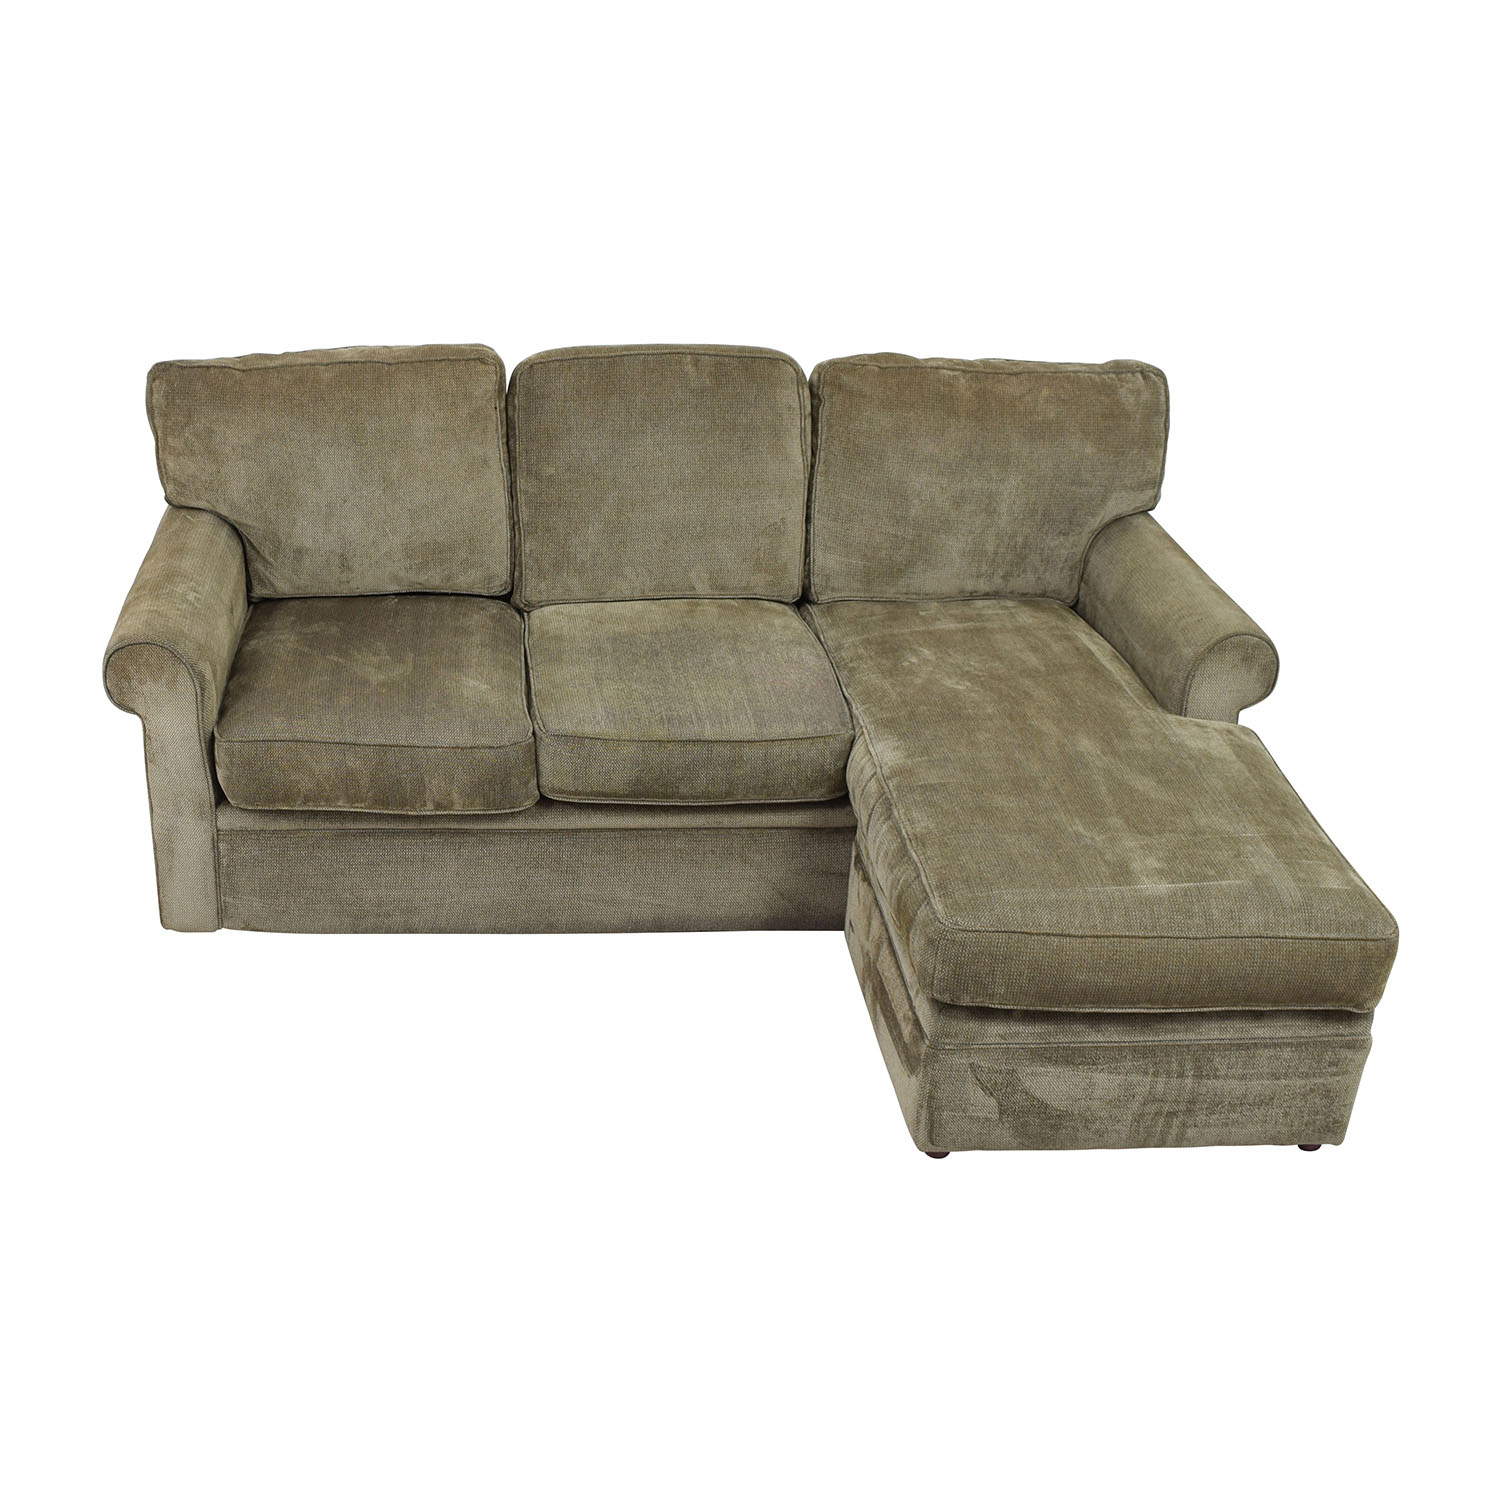 buy Rowe Furniture Green Sectional with Curved Arms Rowe Furniture Sectionals